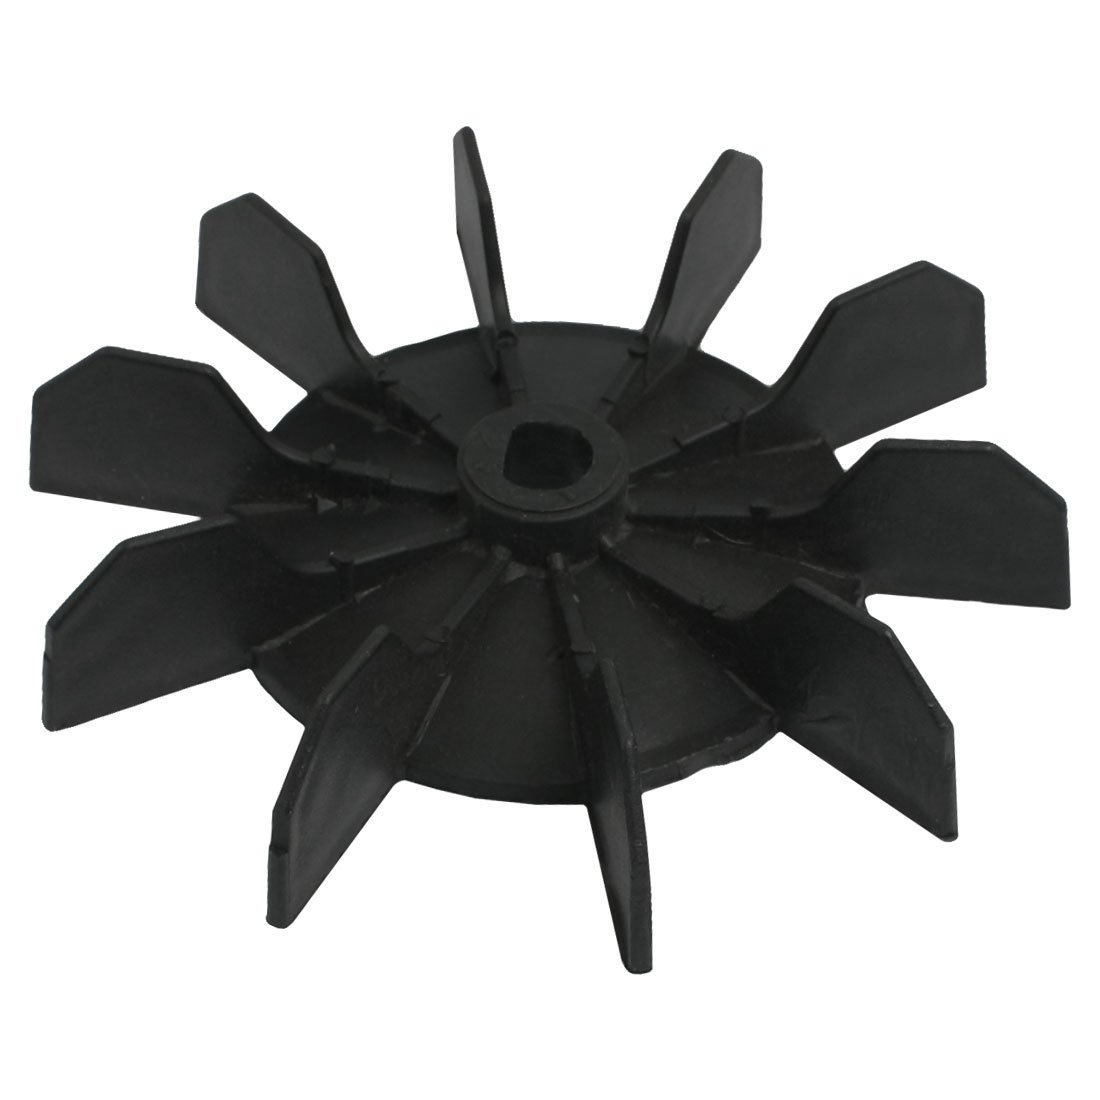 Air Compressor Motor Fan Replacement 0.5 Inner Bore 10 Impeller Blade Black It features ten blades to increase cooling system image